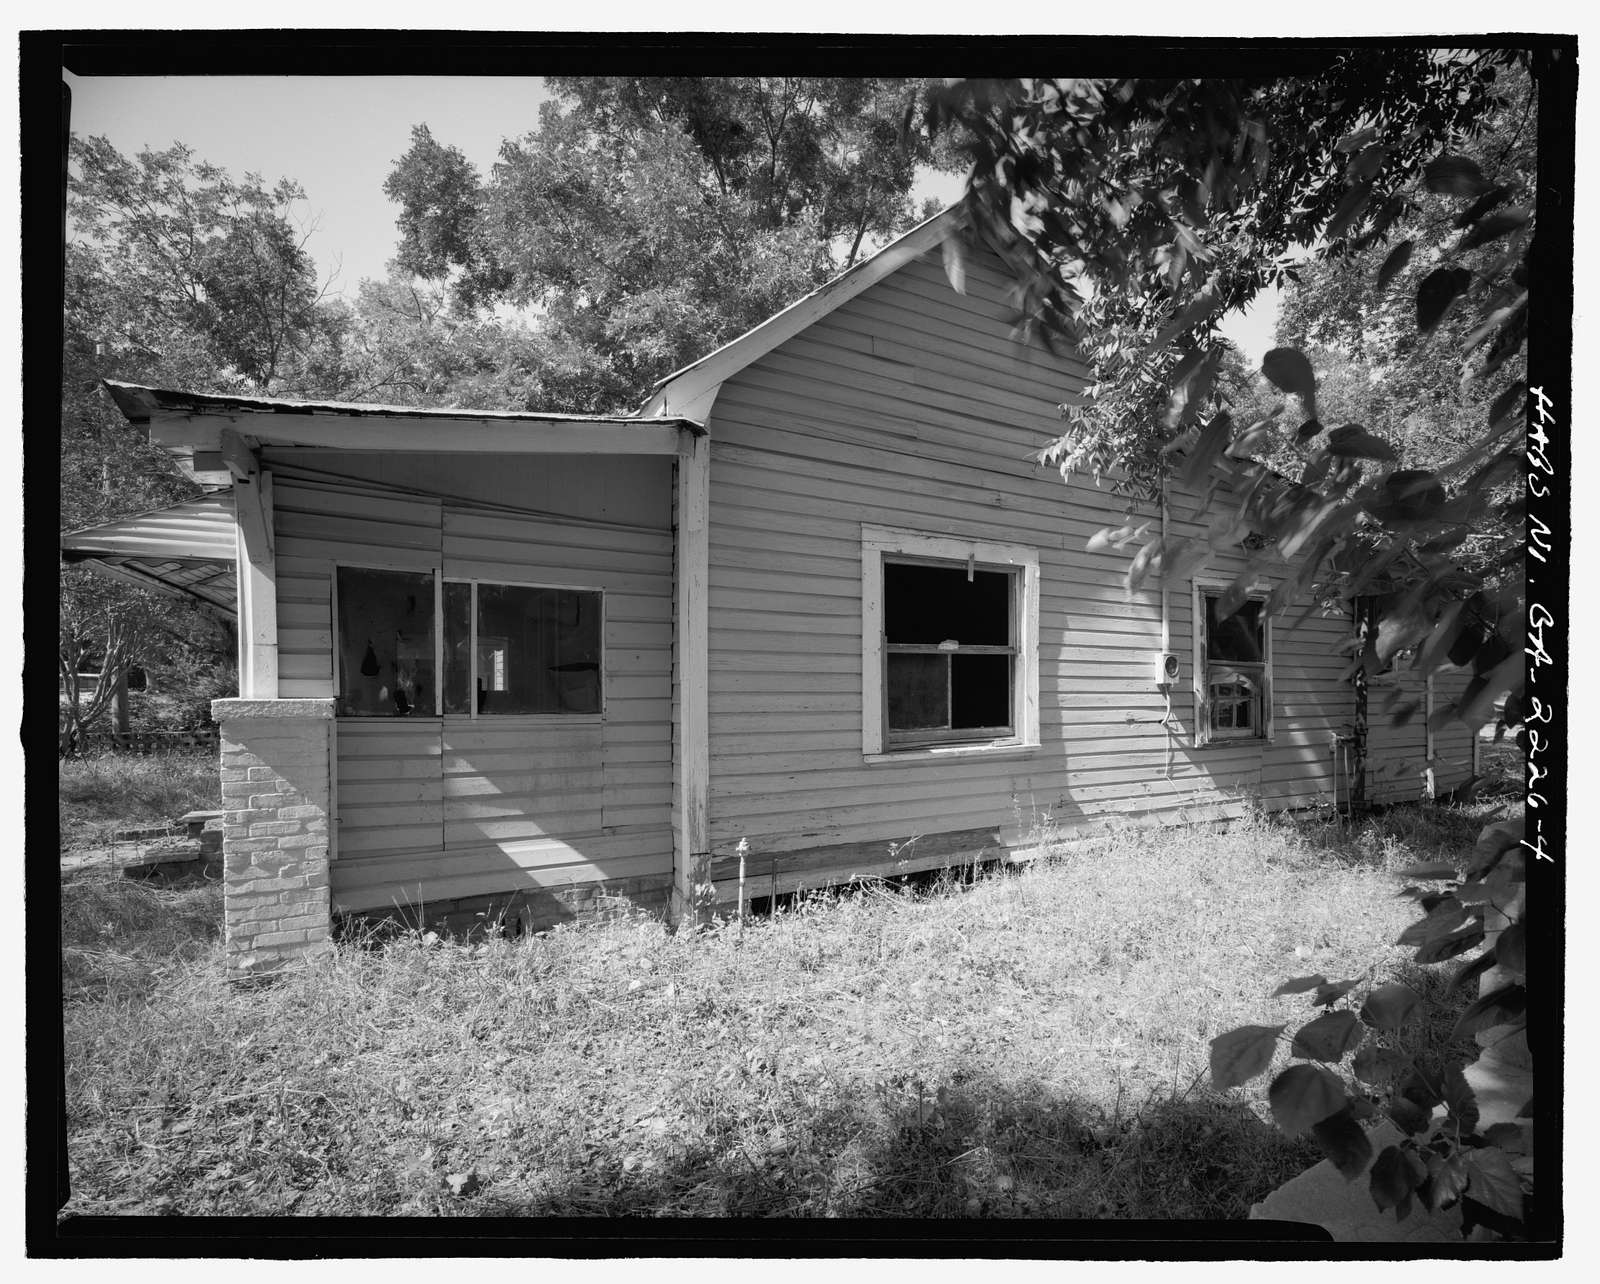 808 Short Bewick Street (House), Waycross, Ware County, GA